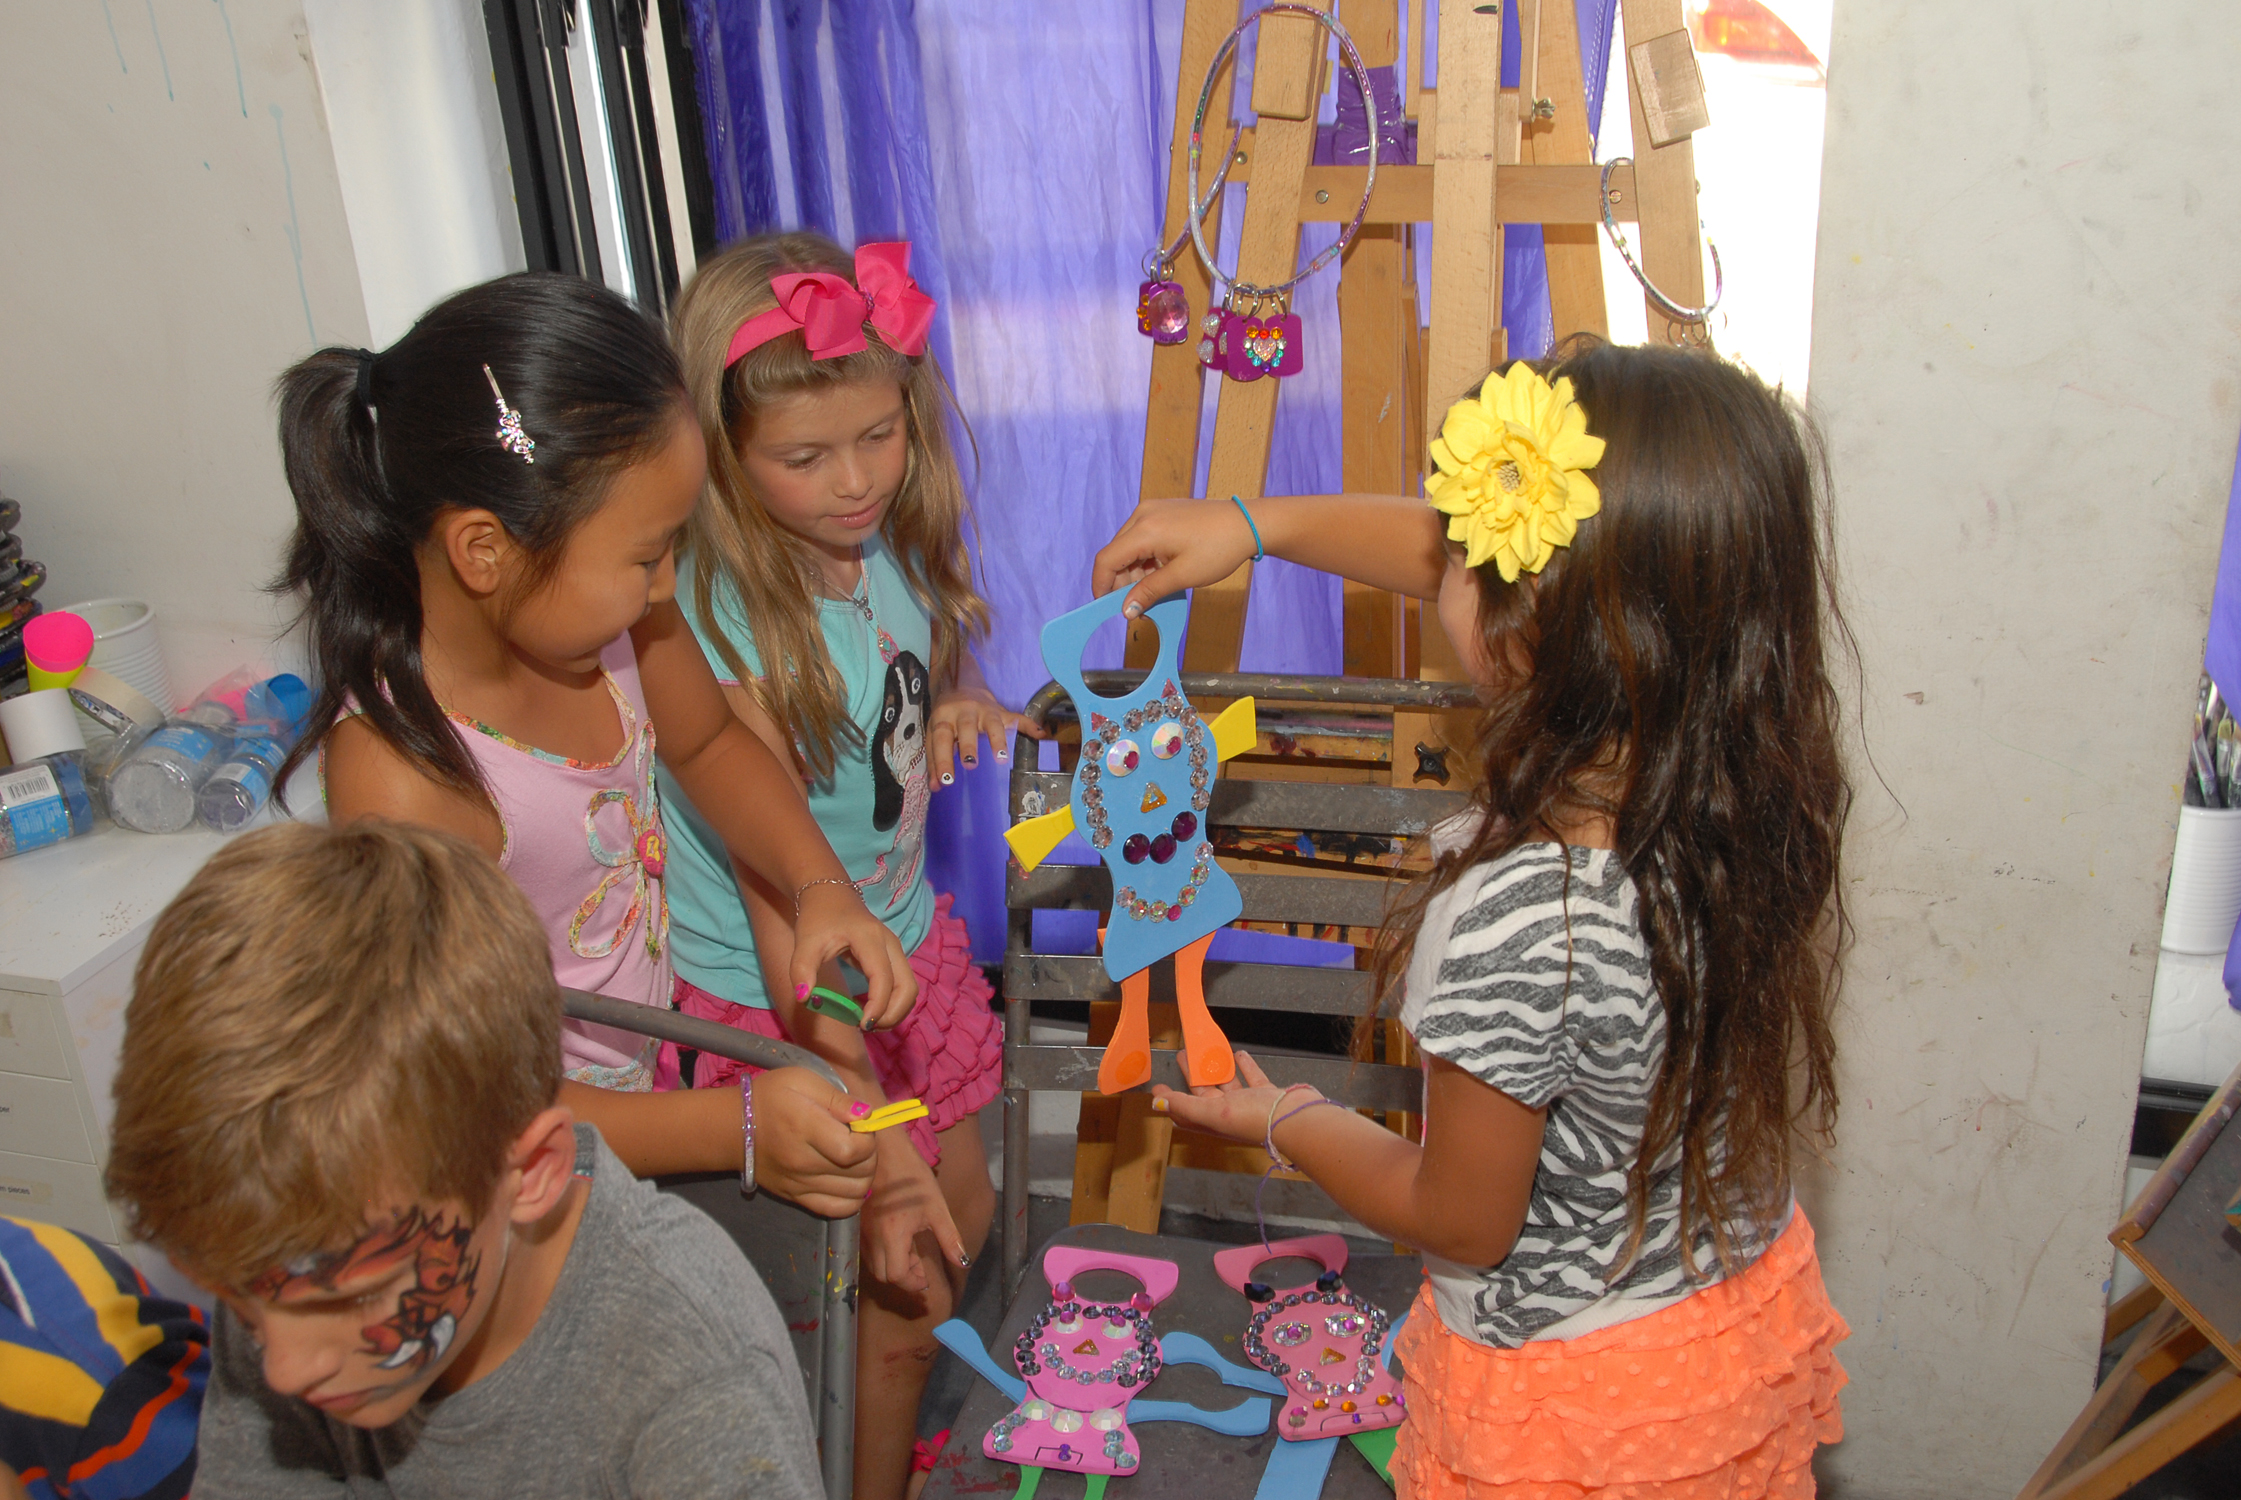 tarynco-events-kids-party-art-carnival-themed-fun-bedazzle.jpg